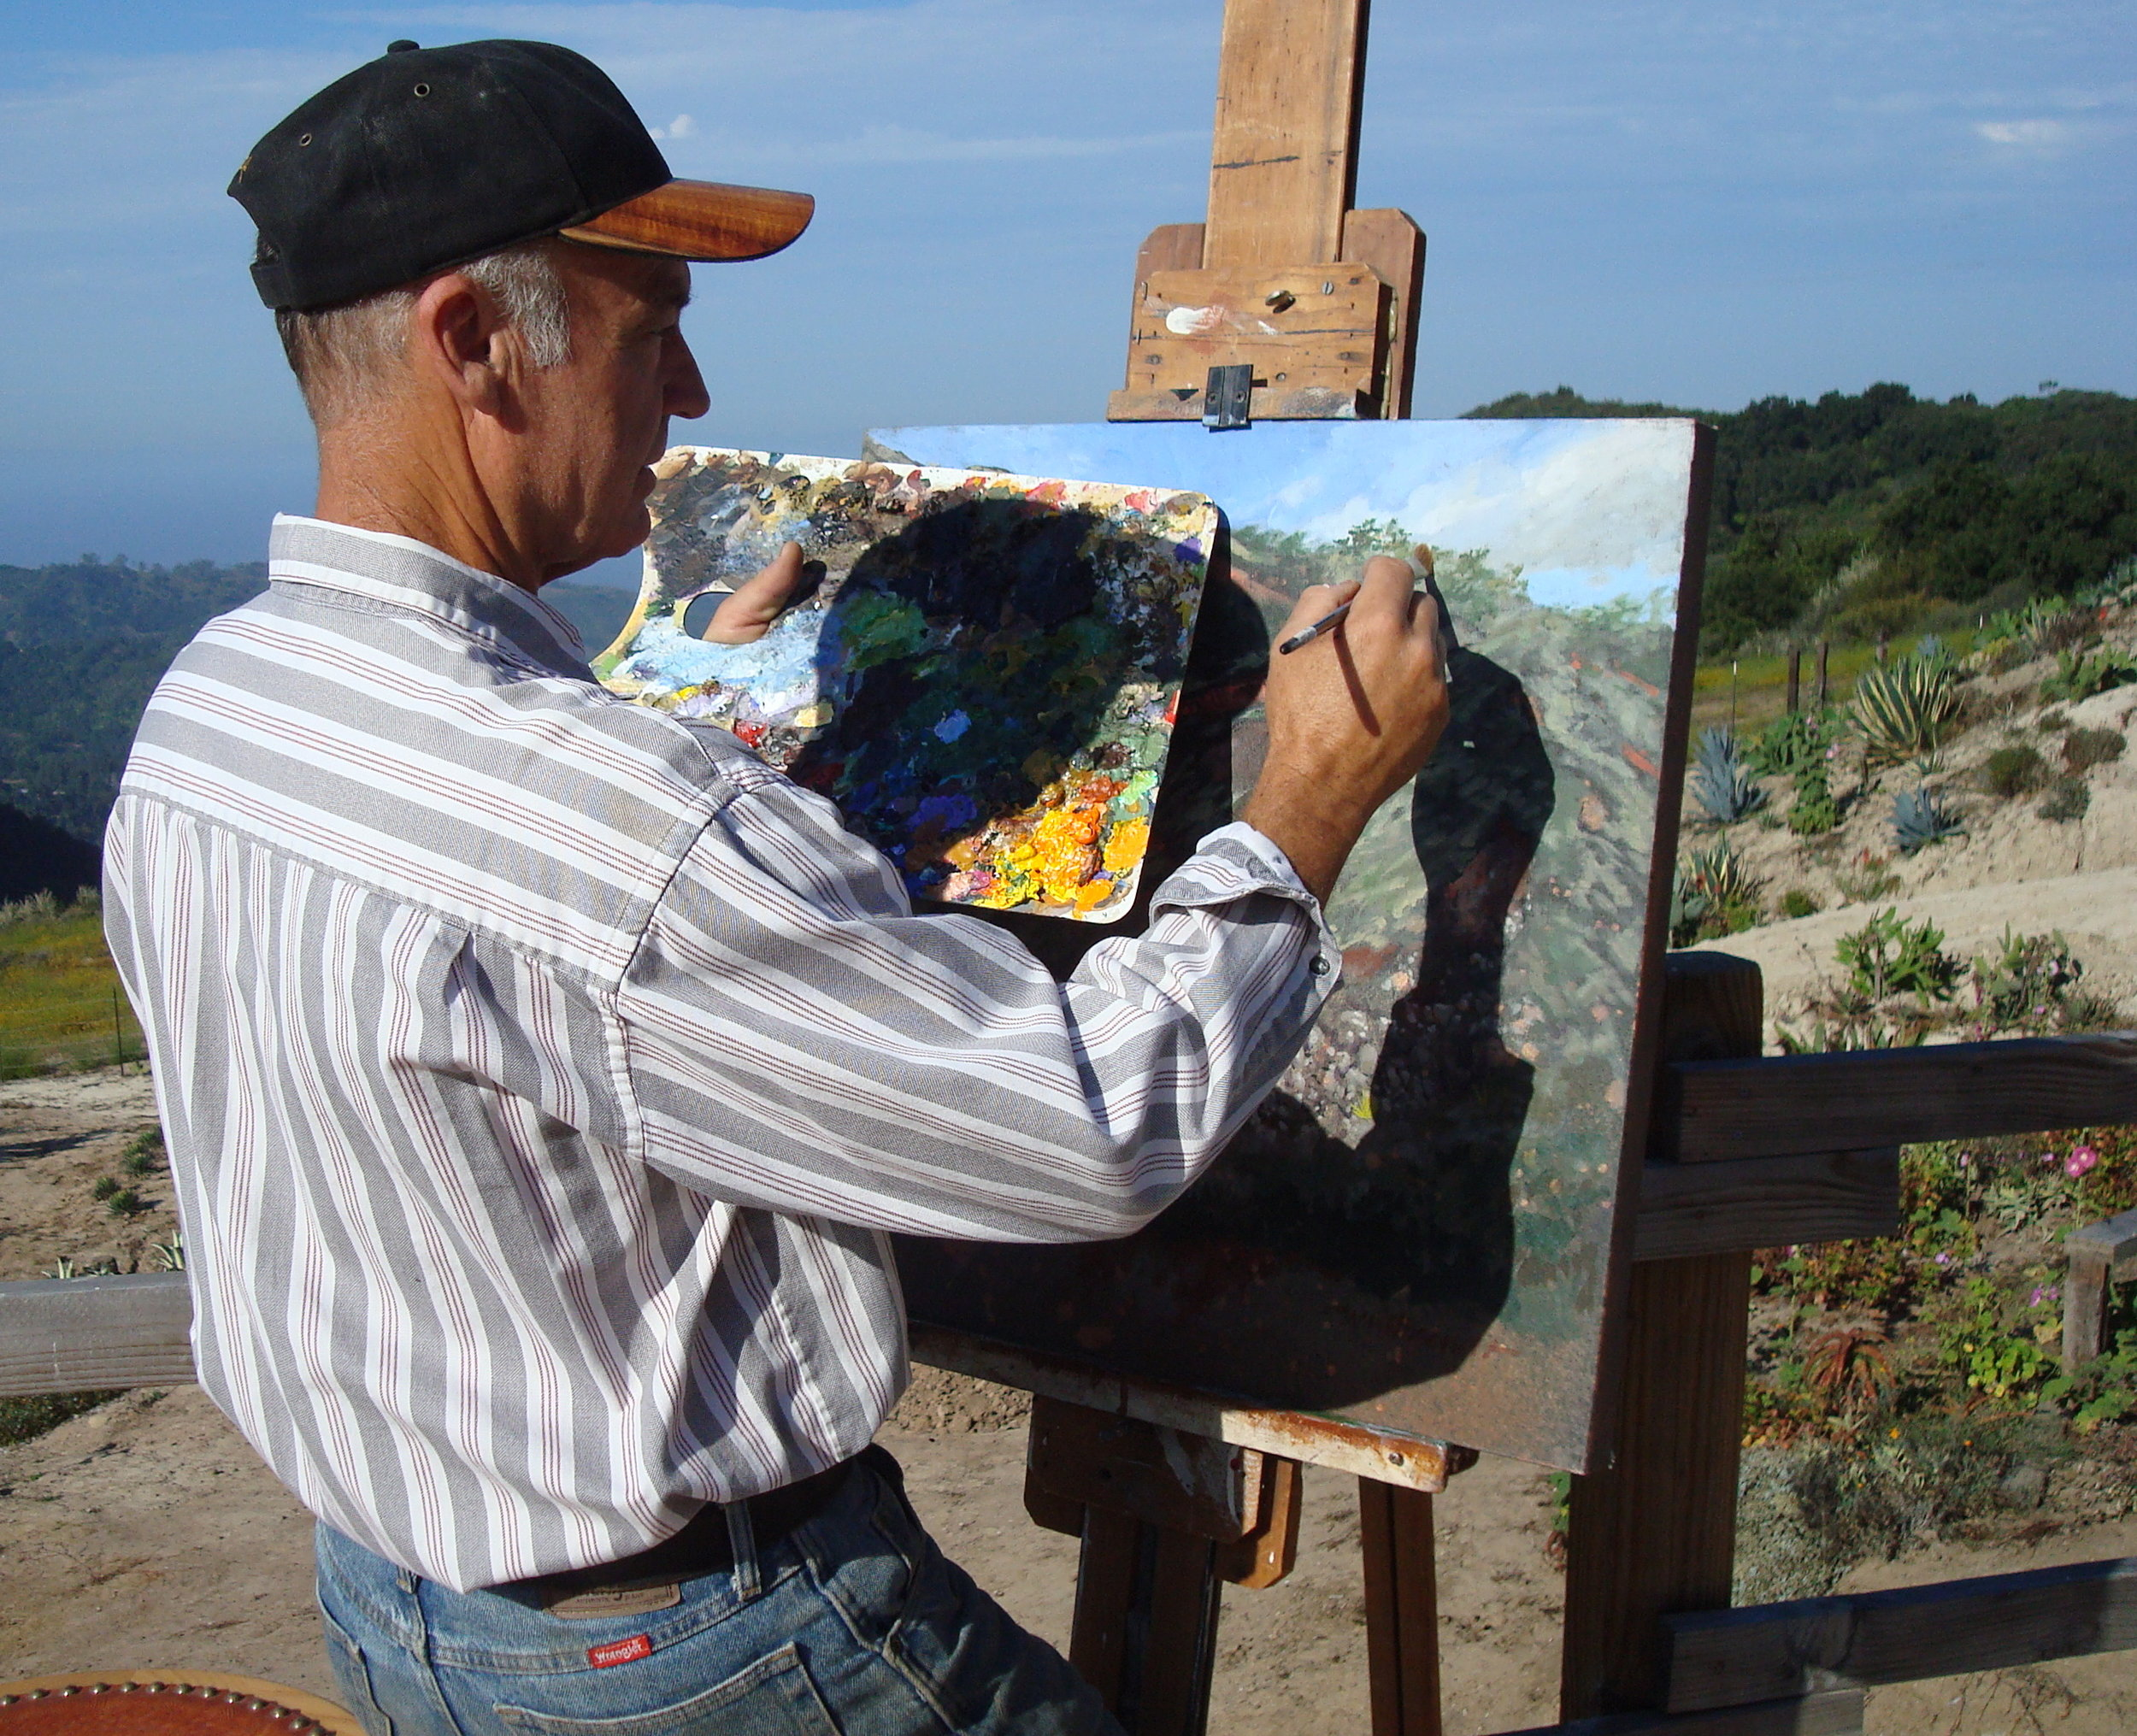 The artist at work in 2010.